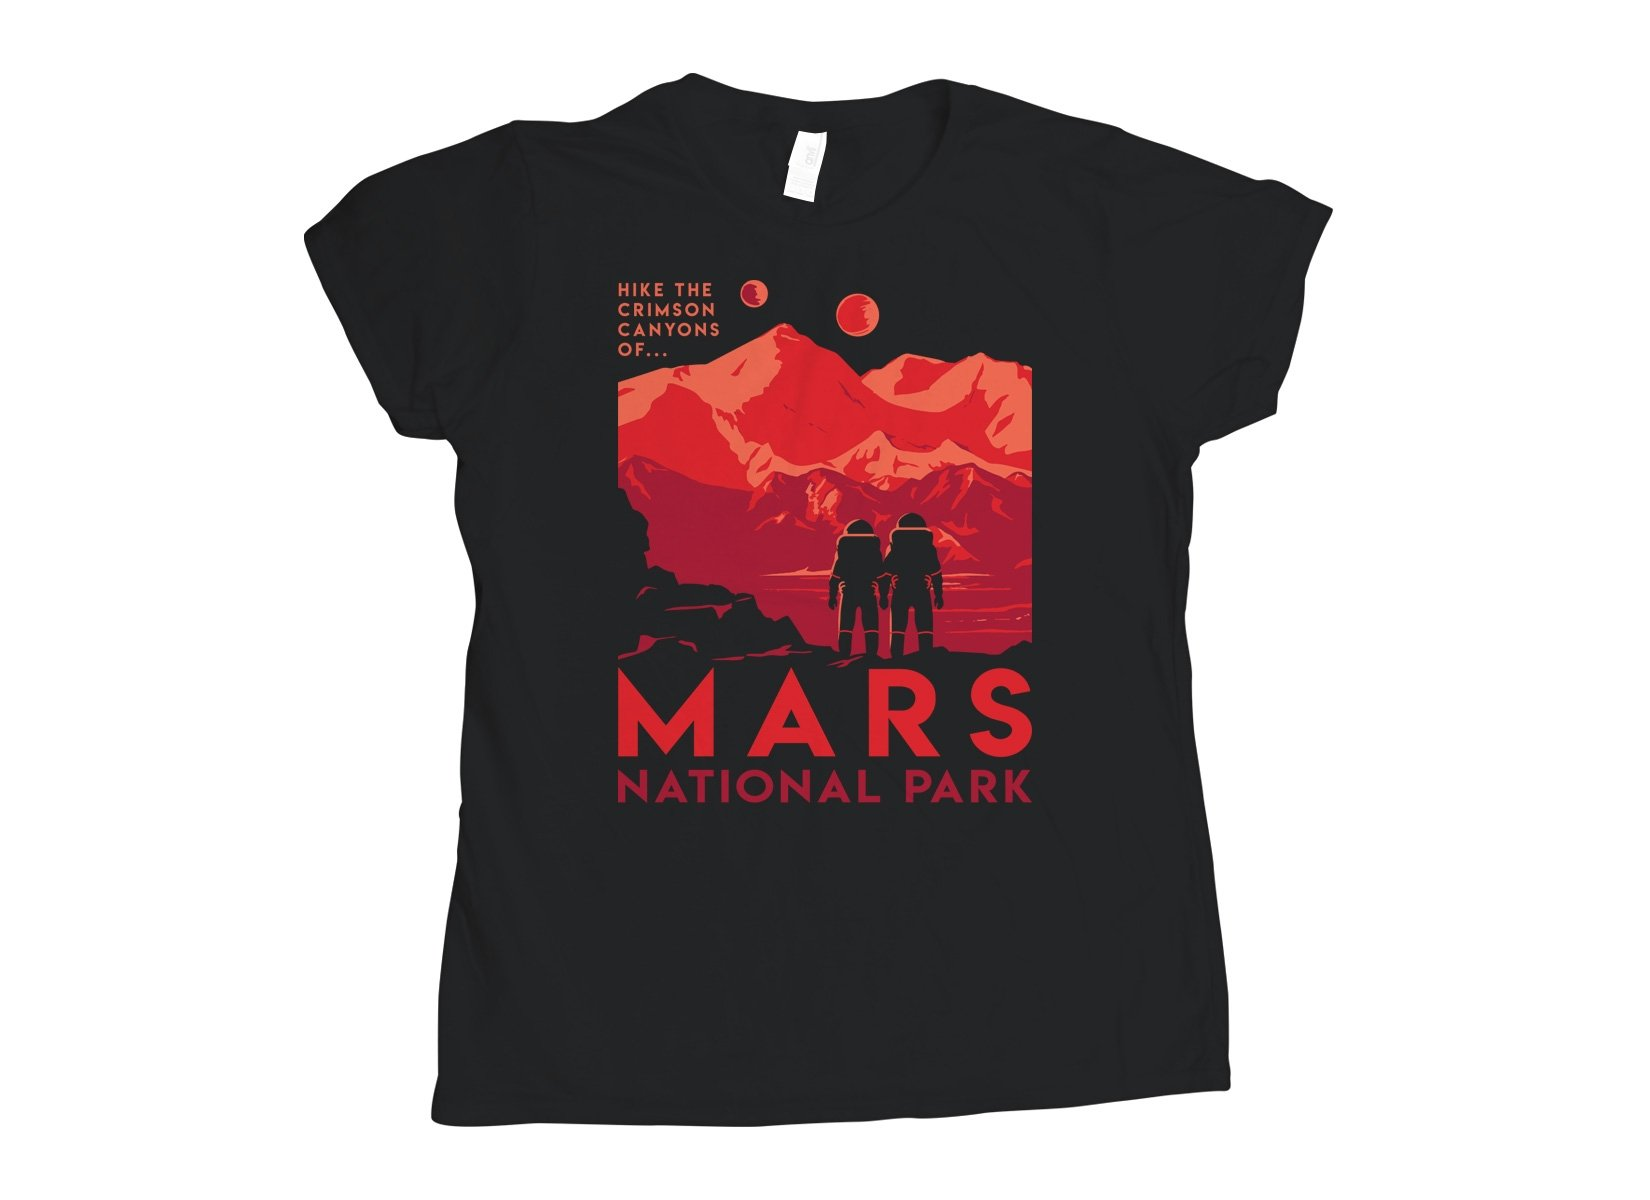 Mars National Park on Womens T-Shirt